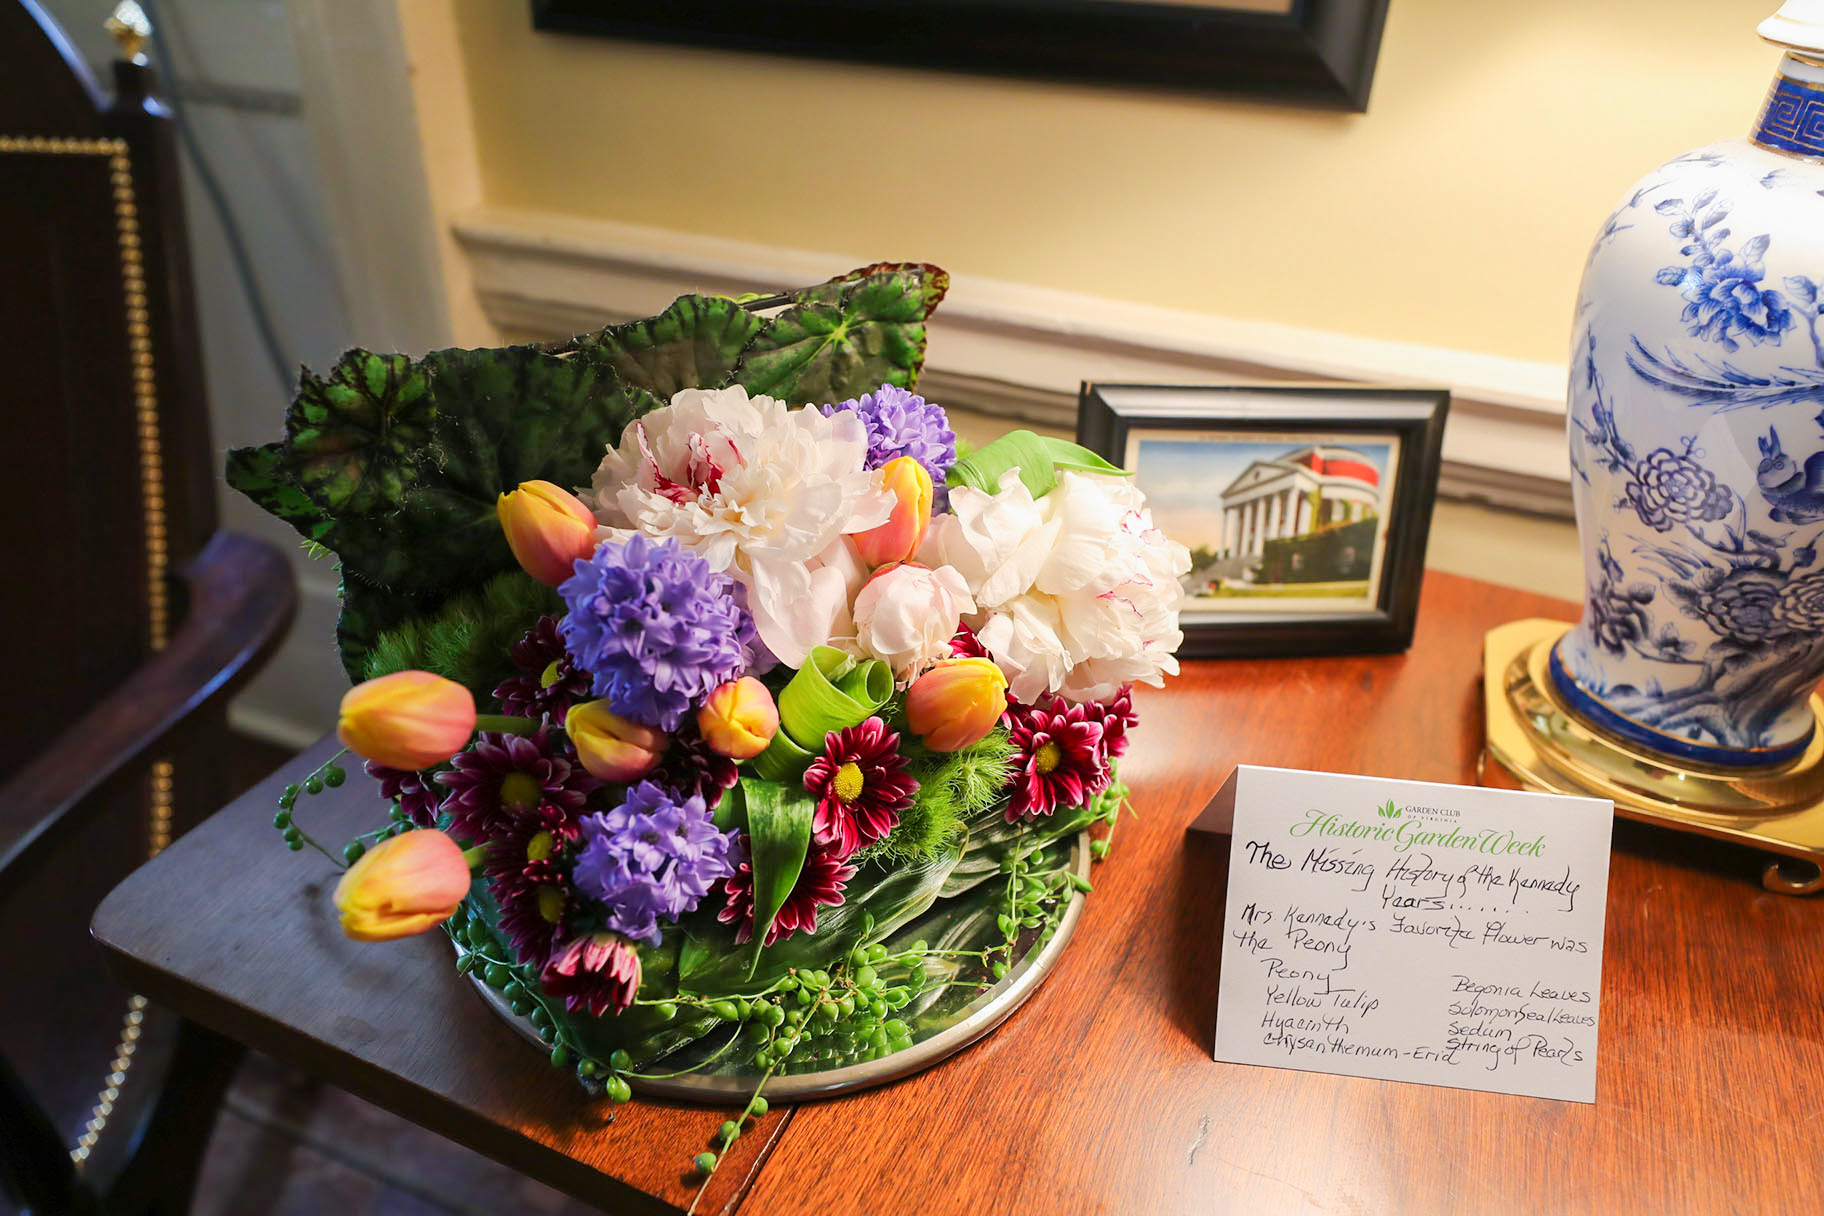 Politics professor Larry Sabato opened his home in Pavilion IV for Historic Garden Week. This floral arrangement, featuring peonies –Jackie Kennedy's favorite flowers – and others appear courtesy of the Keswick Garden Club.